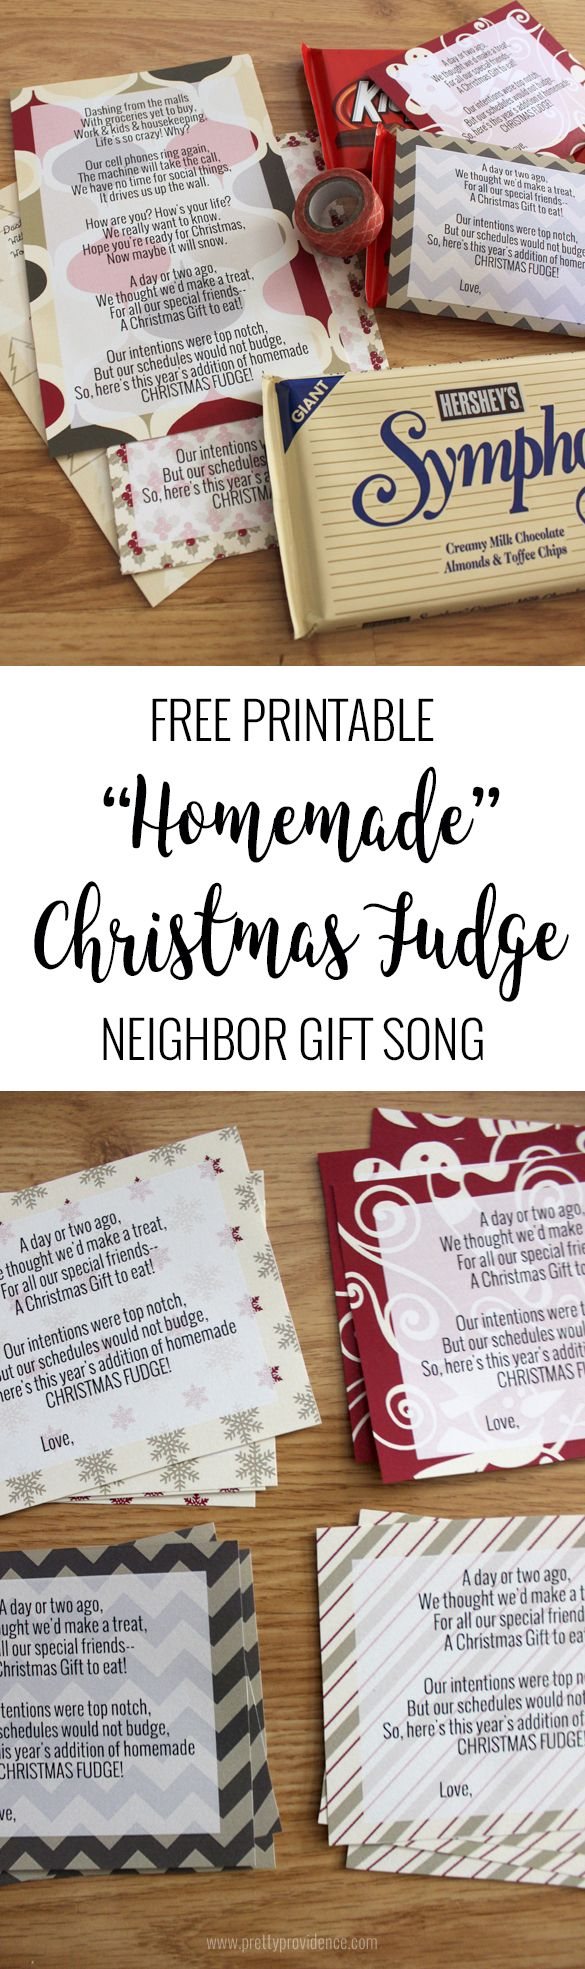 "I am obsessed with this ""homemade"" Christmas fudge neighbor gift idea! A perfect, fun way for people to acknowledge their friends and loved ones without going crazy overboard!"